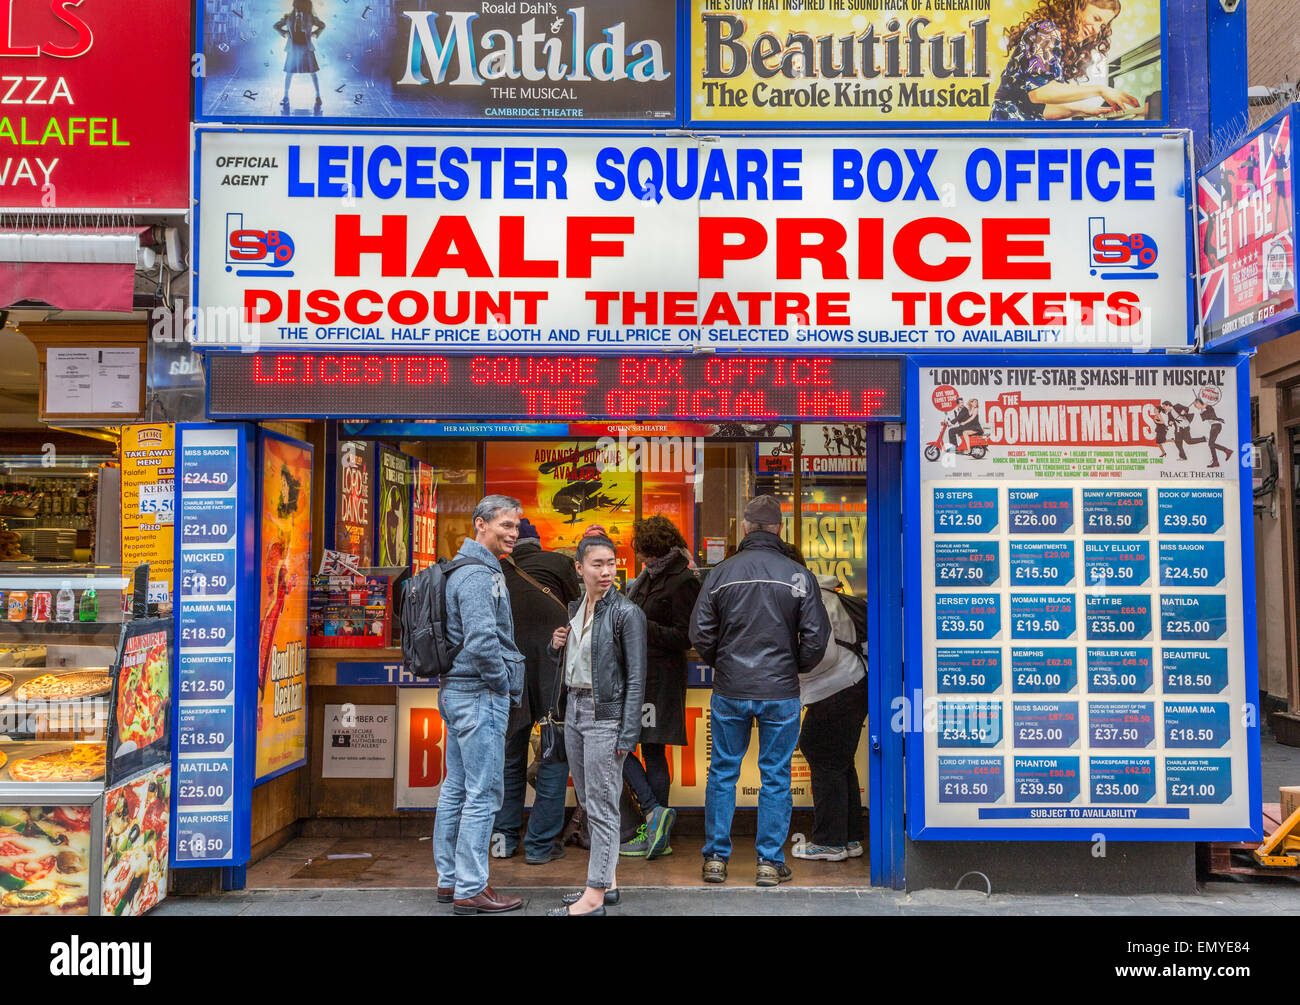 Leicester Square Box Office Theatre Tickets - Stock Image